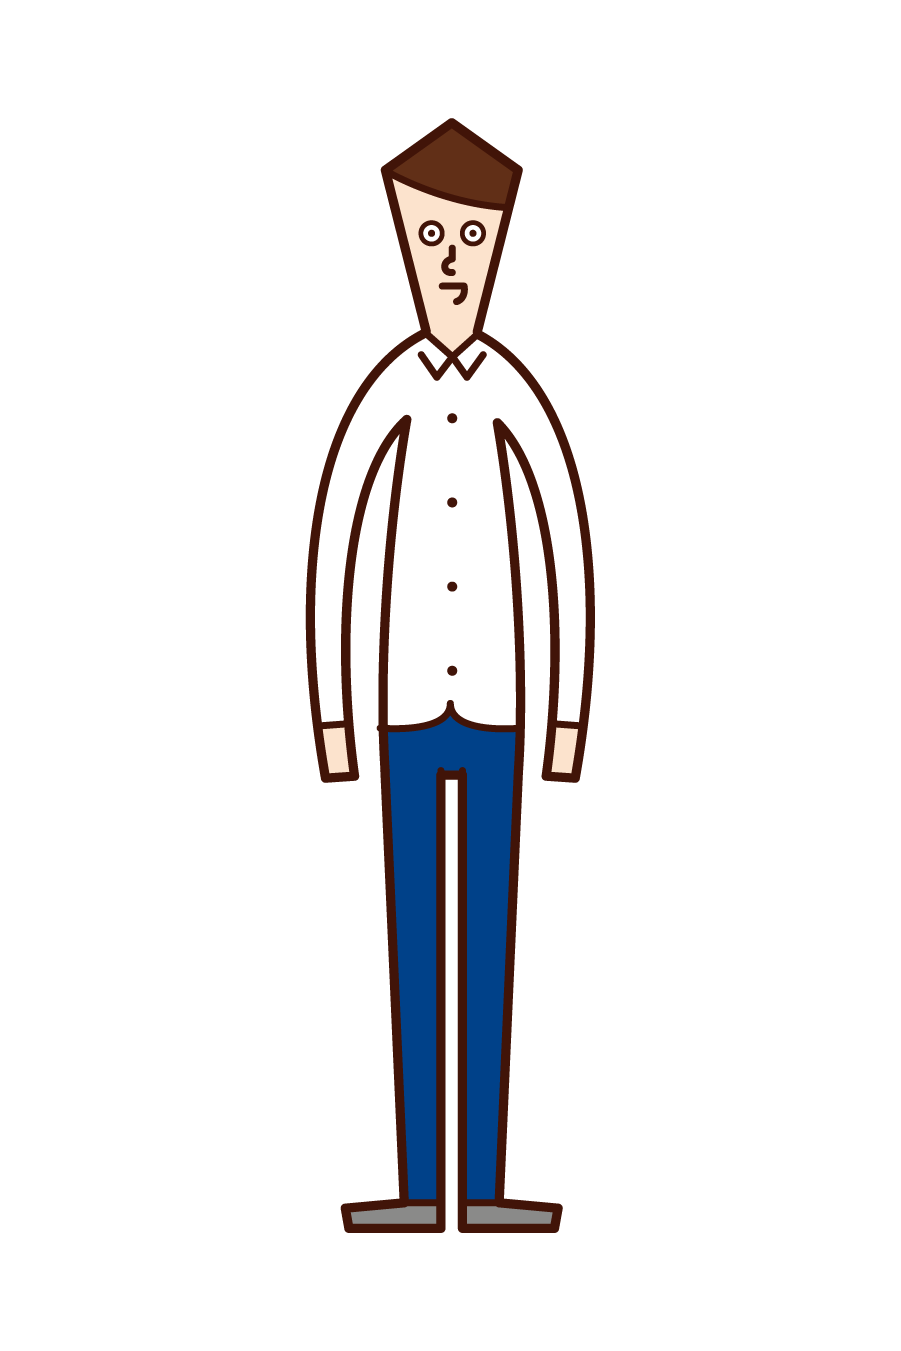 Illustration of a shirtless person (man)